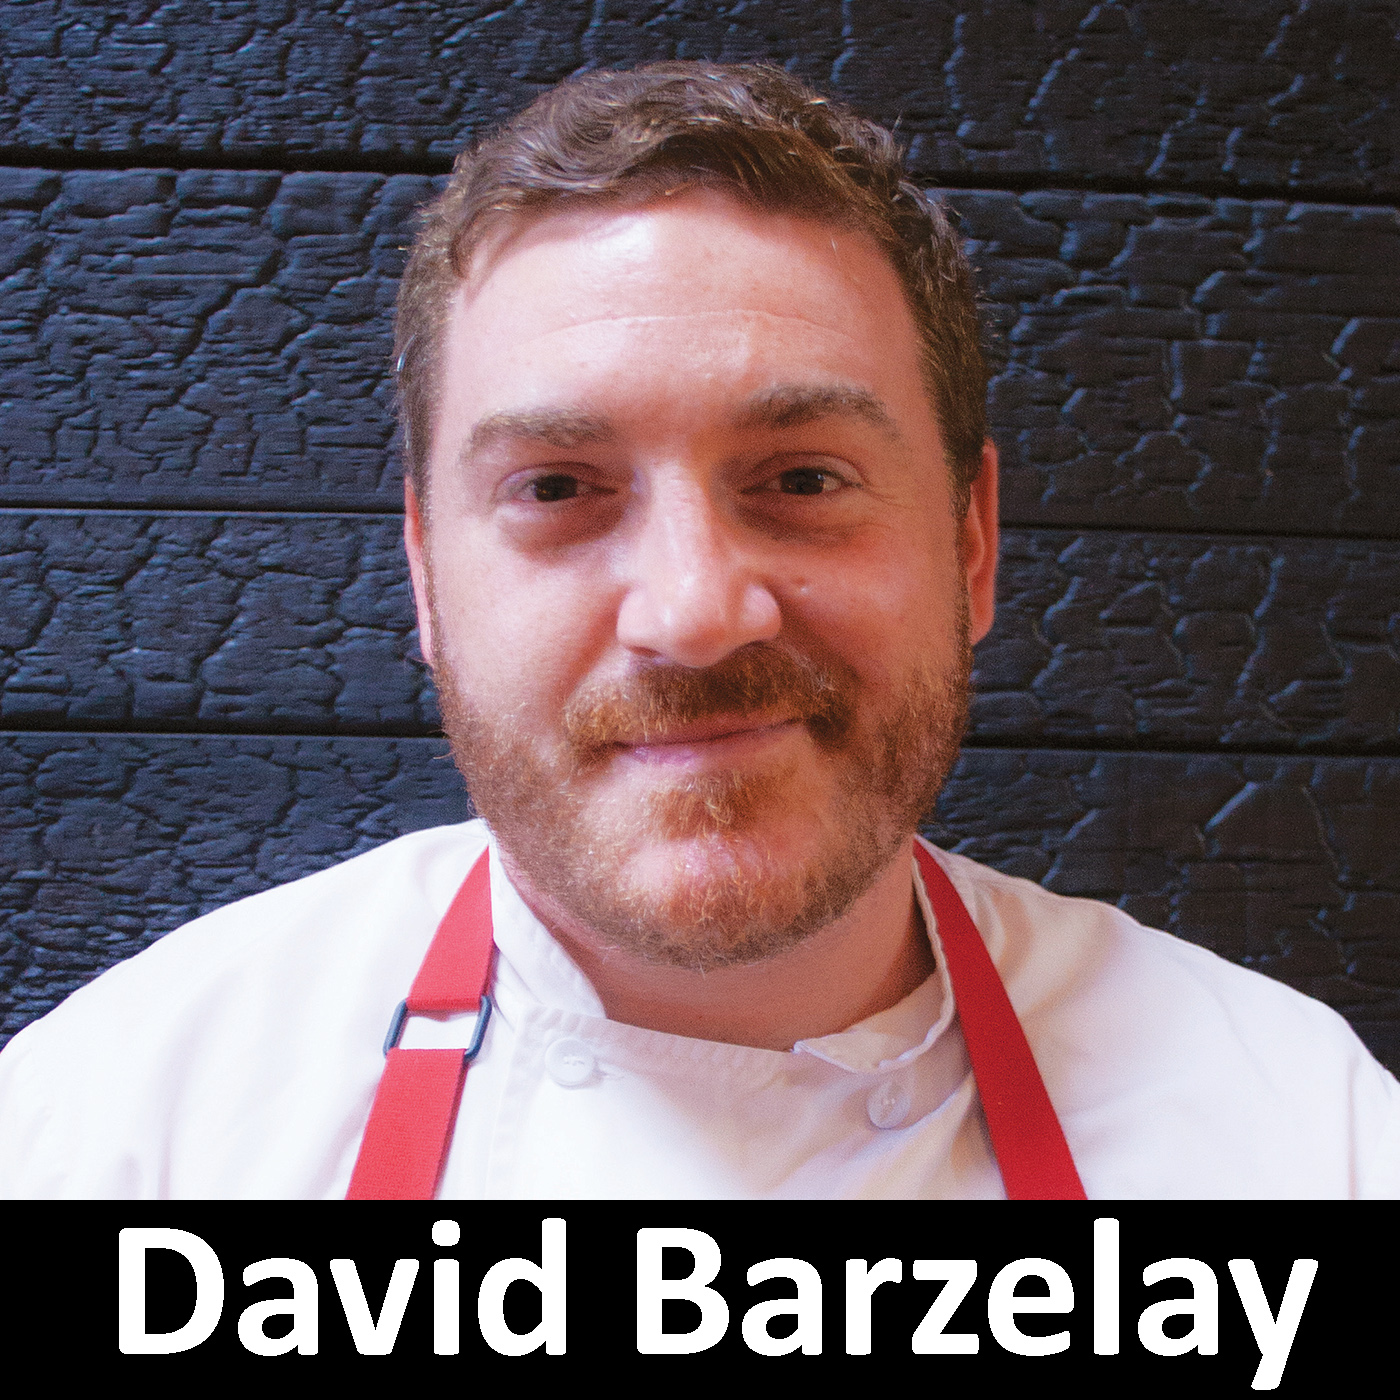 David Barzelay